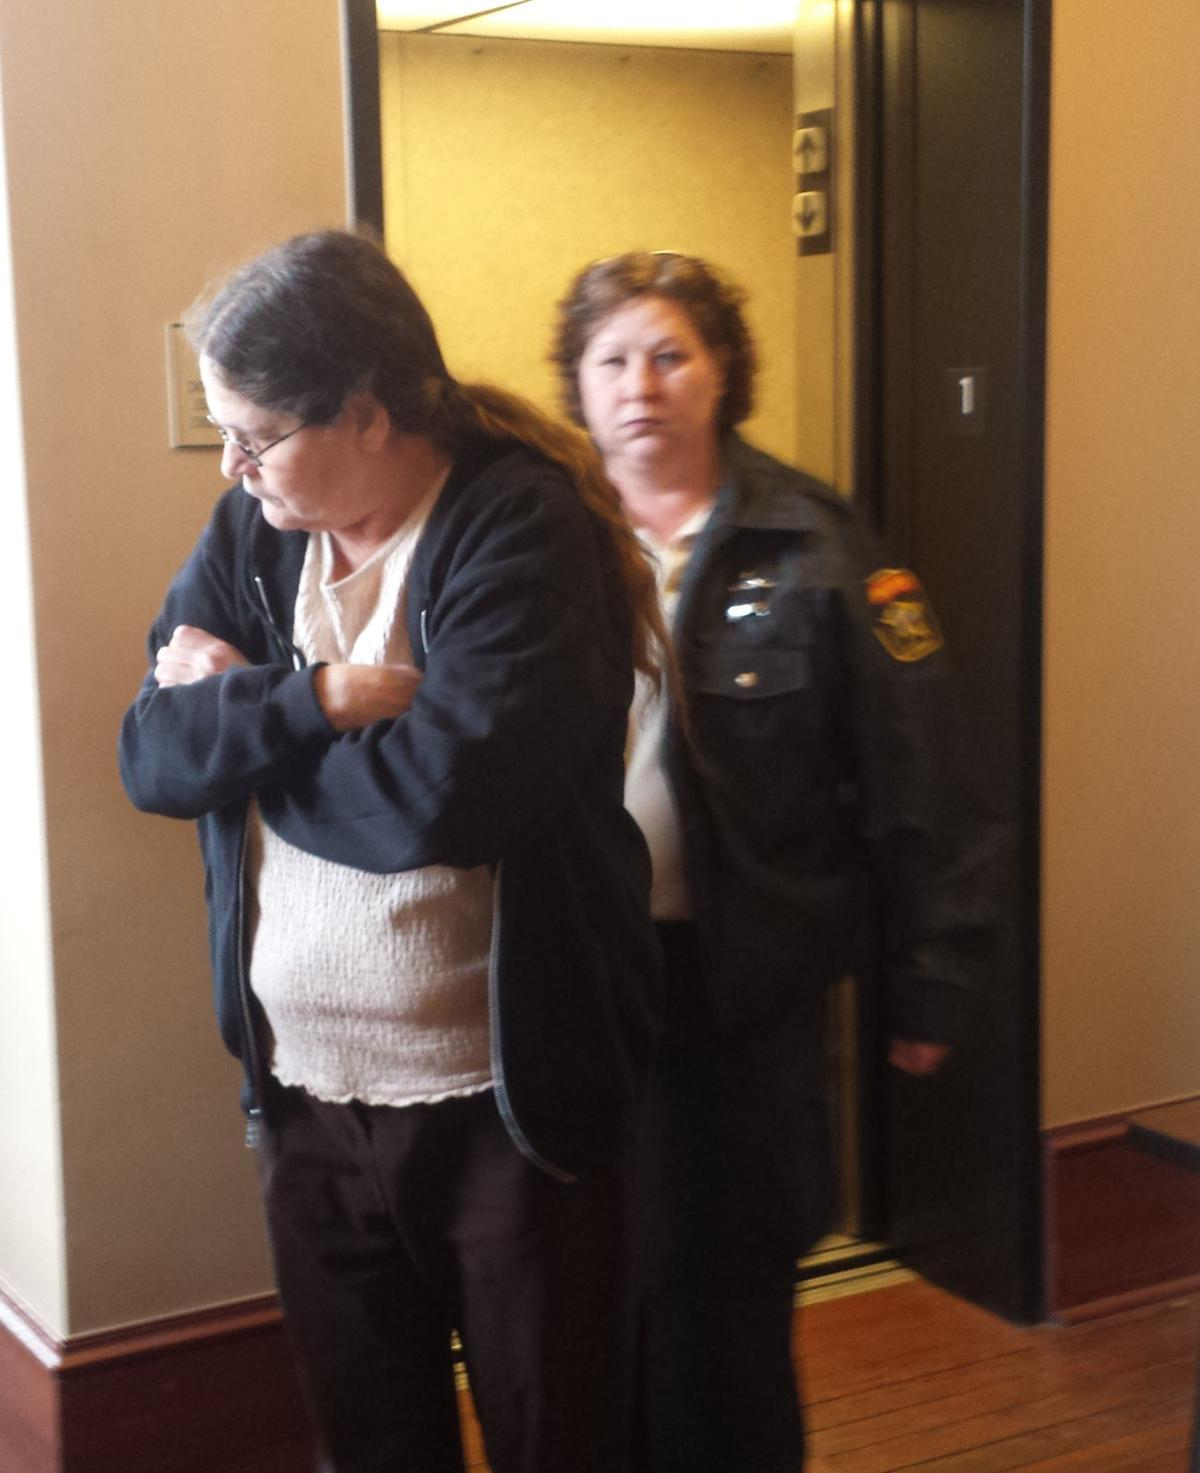 Foster mom convicted of capital murder